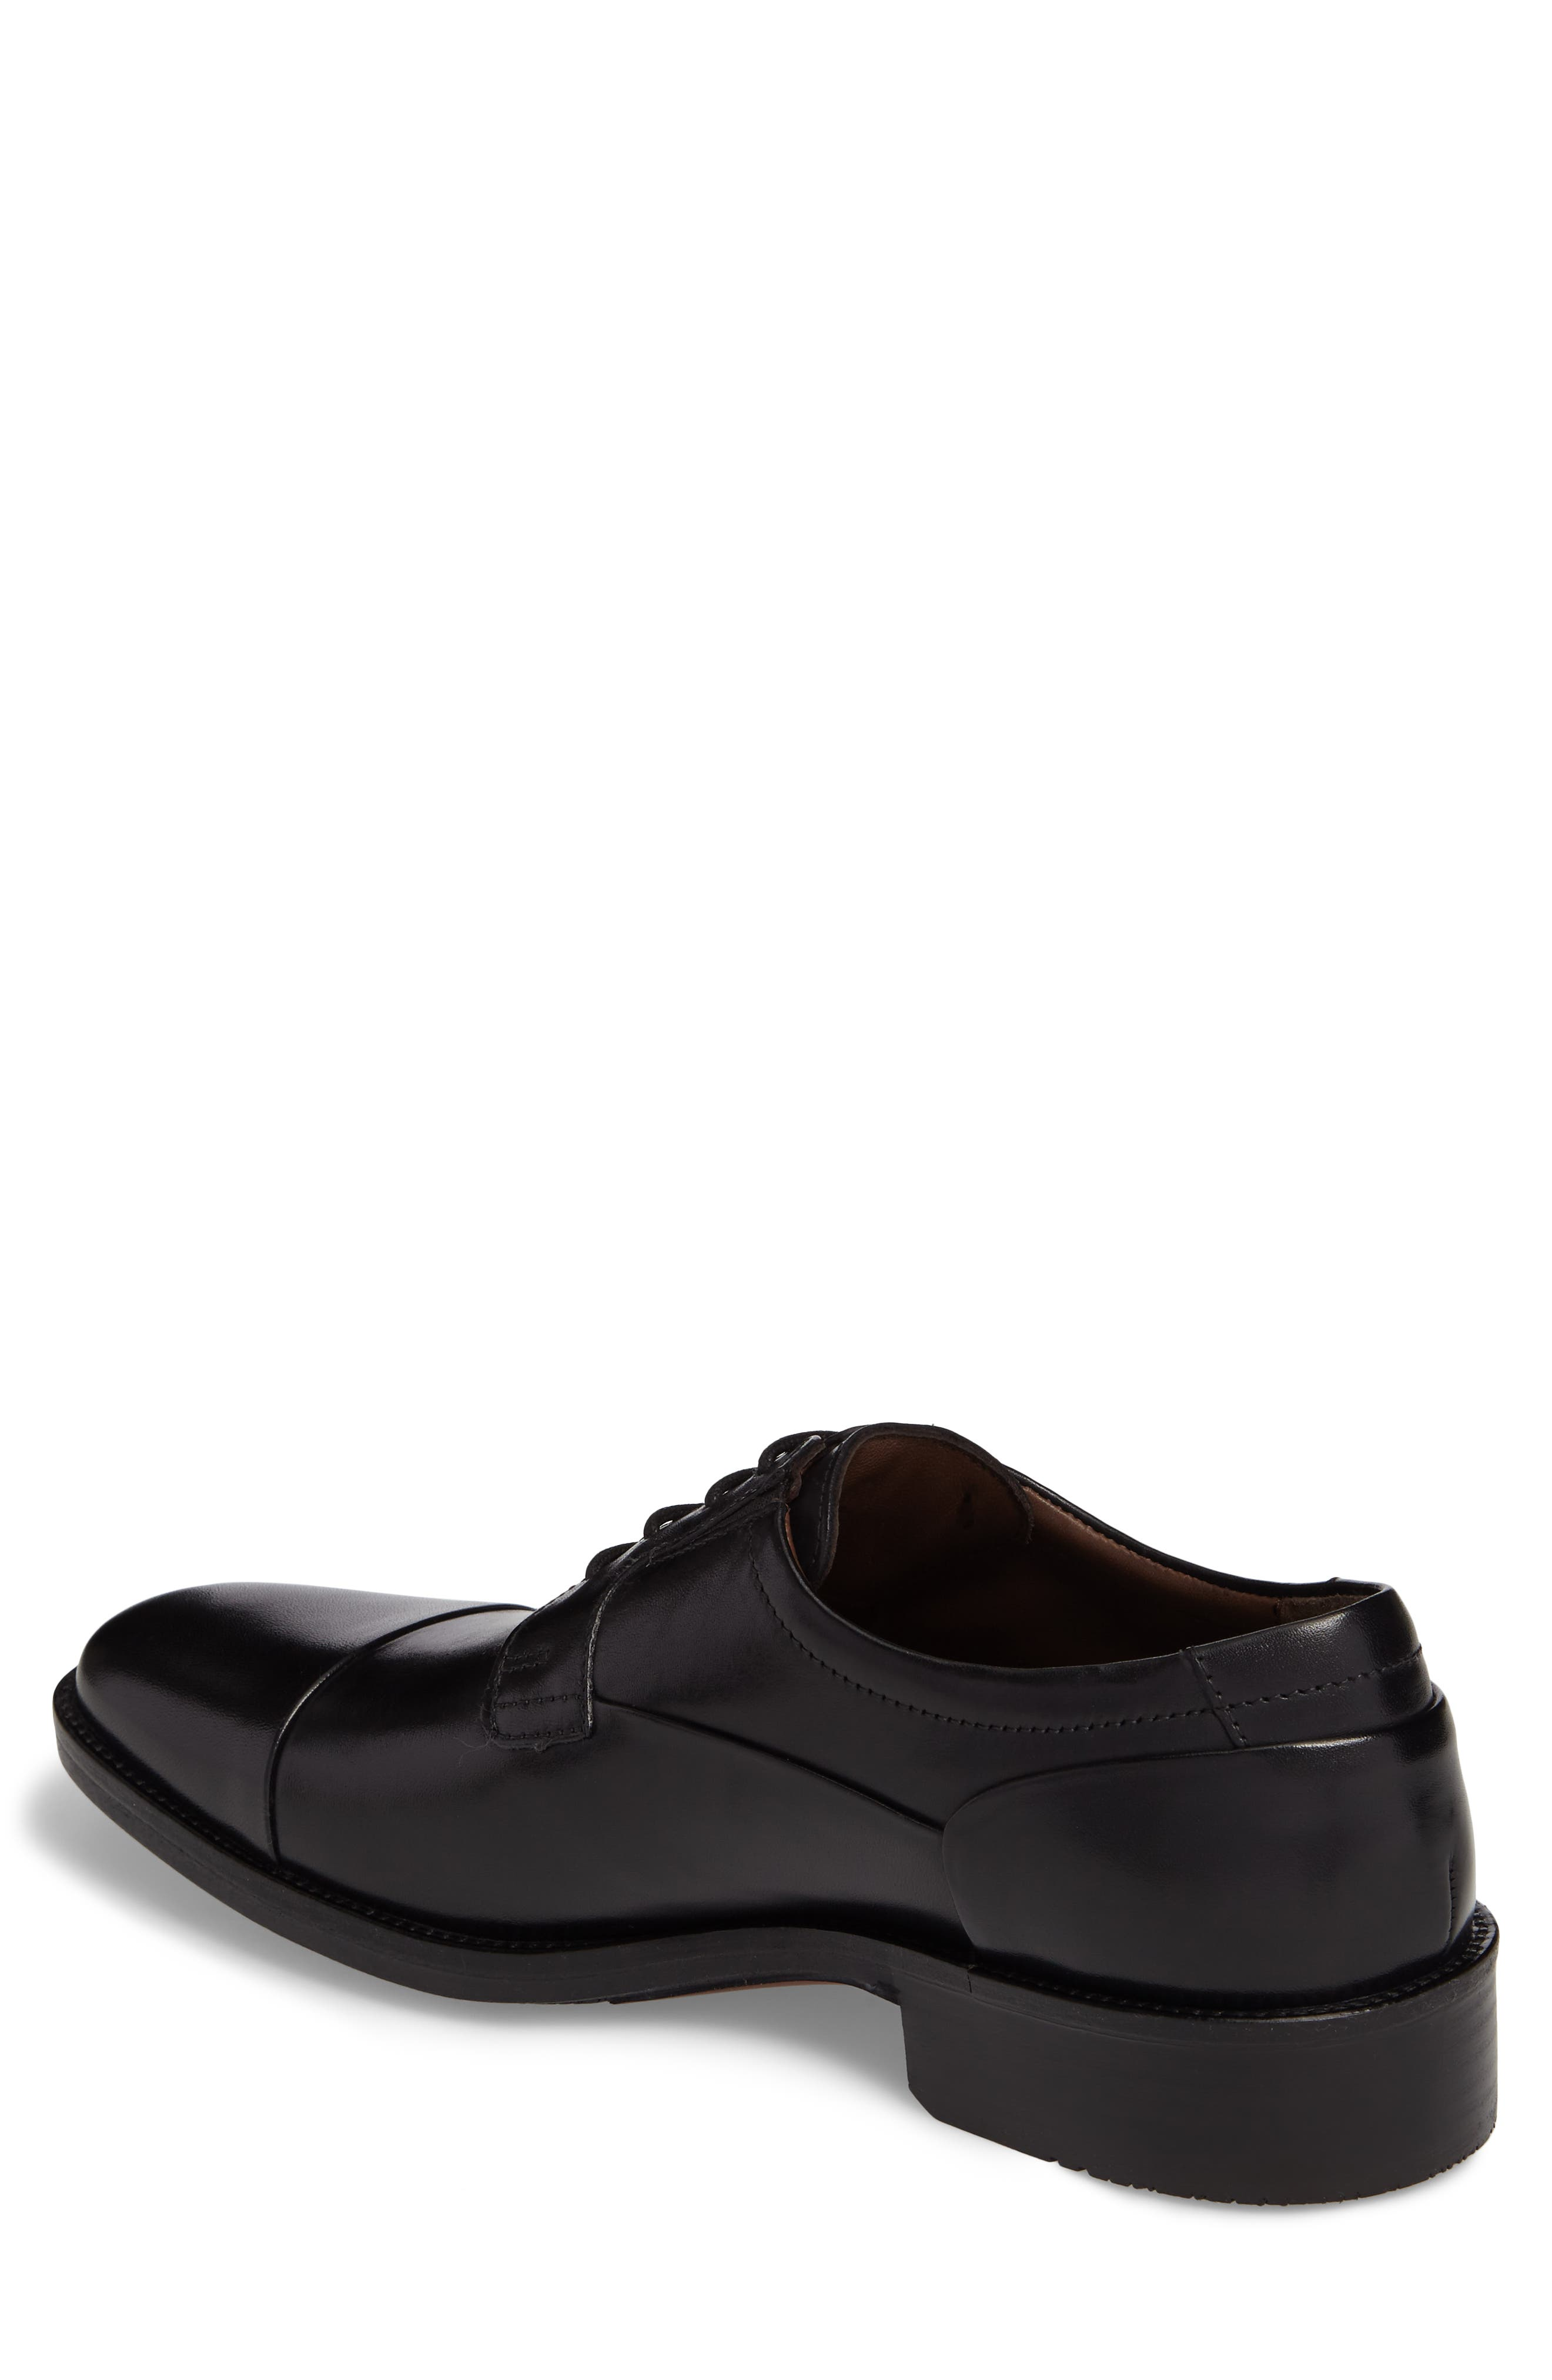 Lancaster Cap Toe Derby,                             Alternate thumbnail 2, color,                             Black